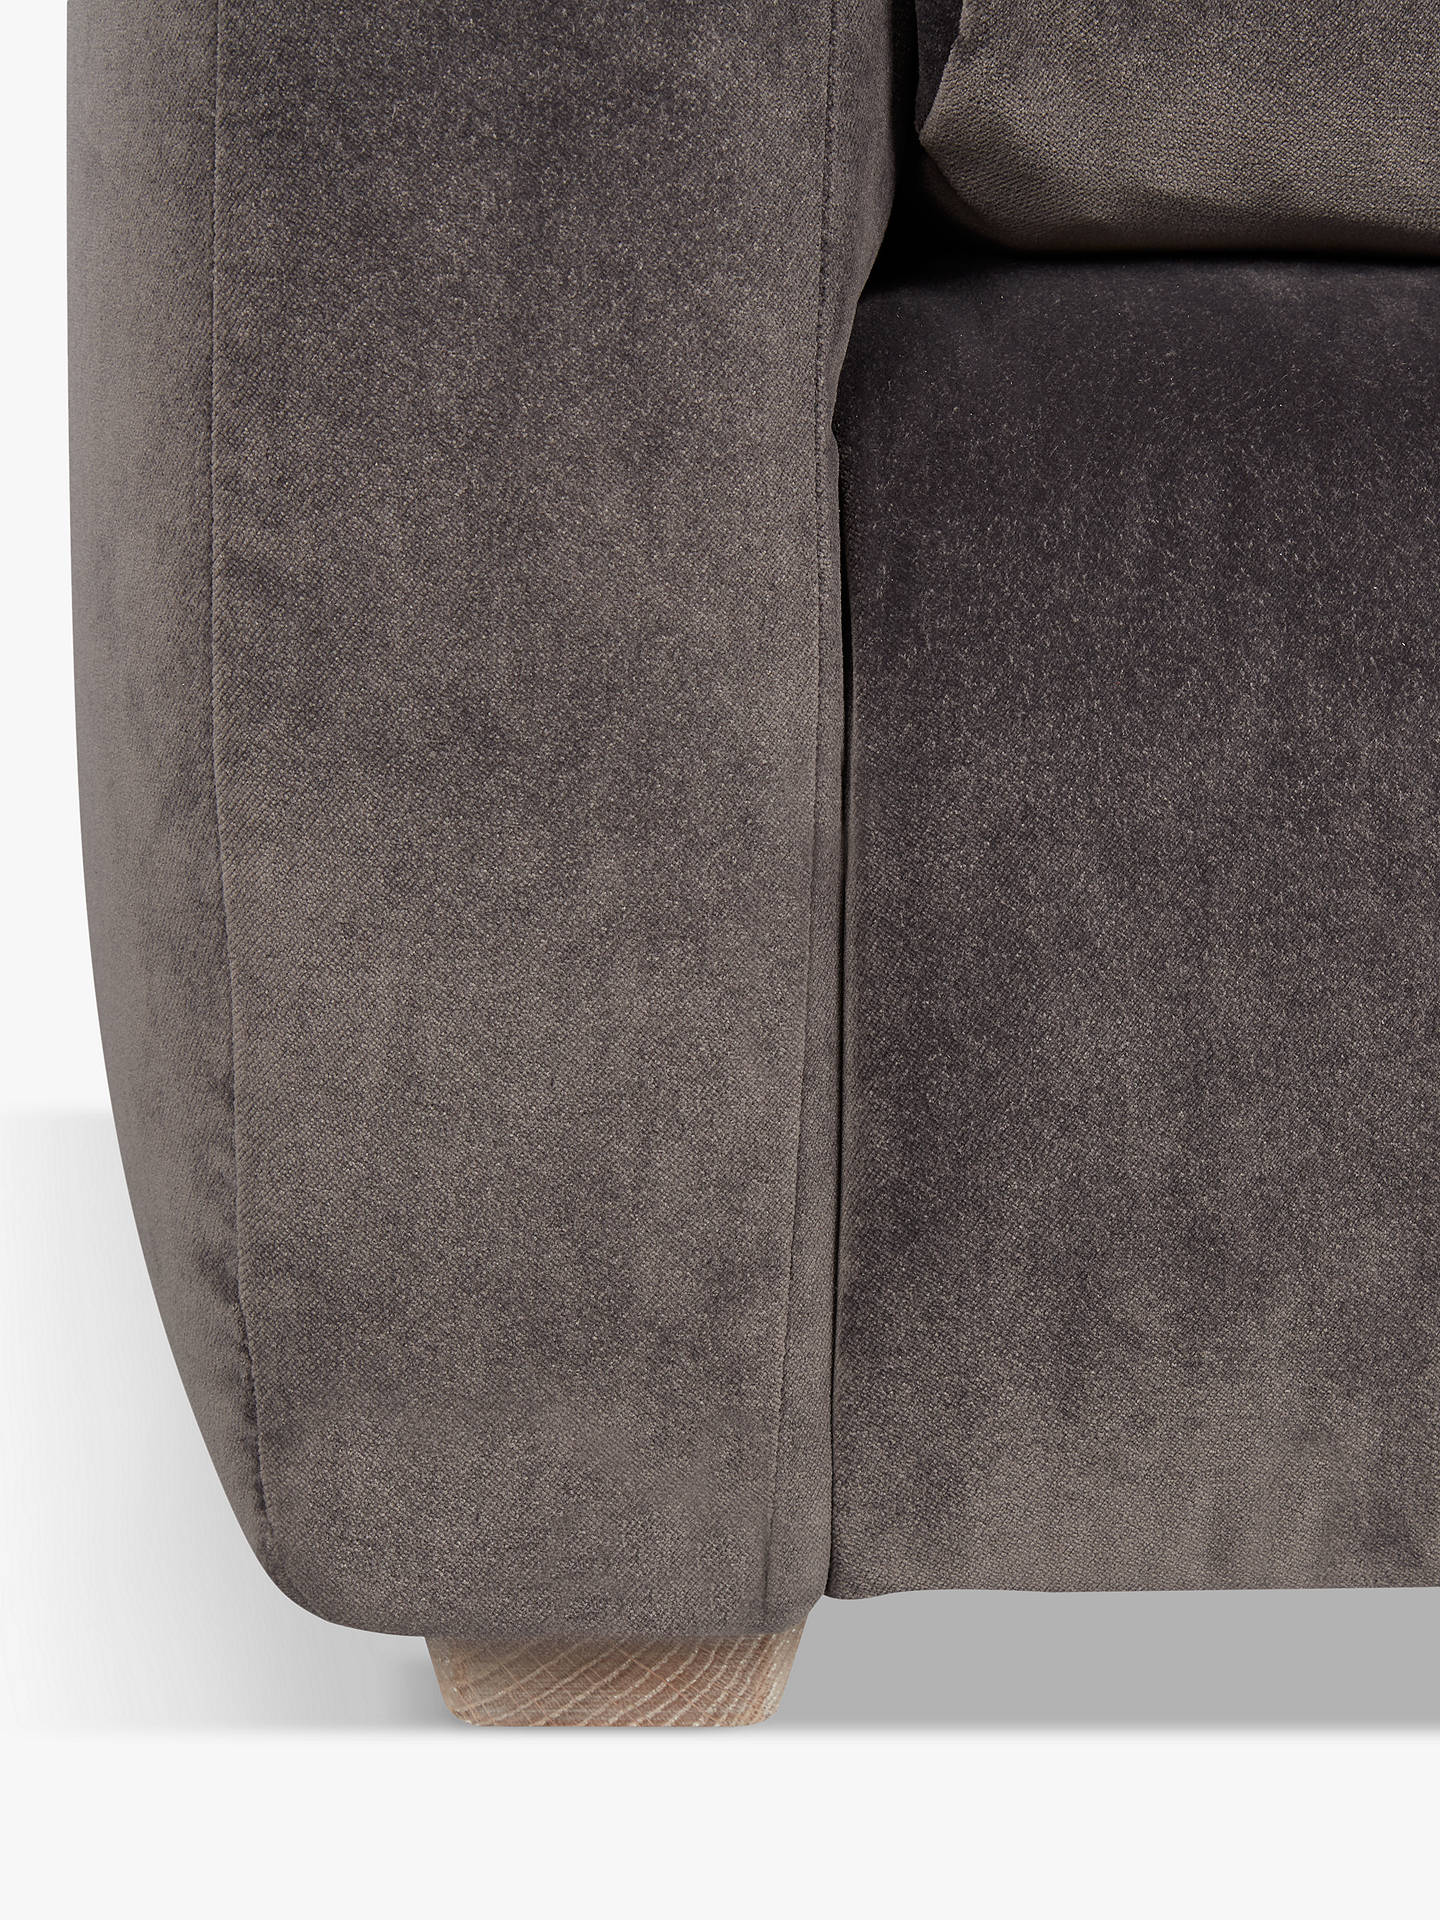 Buy Floppy Jo Snuggler by Loaf at John Lewis, Clever Velvet Steel Online at johnlewis.com